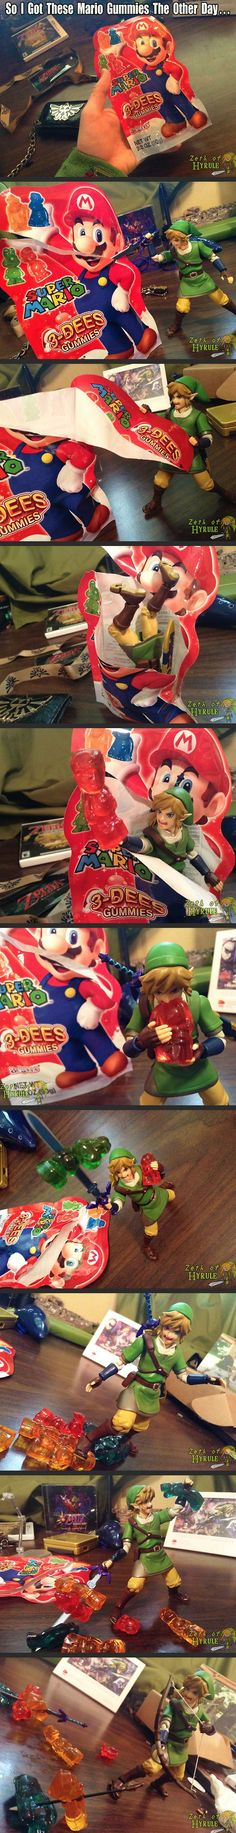 Link attacking Mario gummies... this is too awesome not to repin.